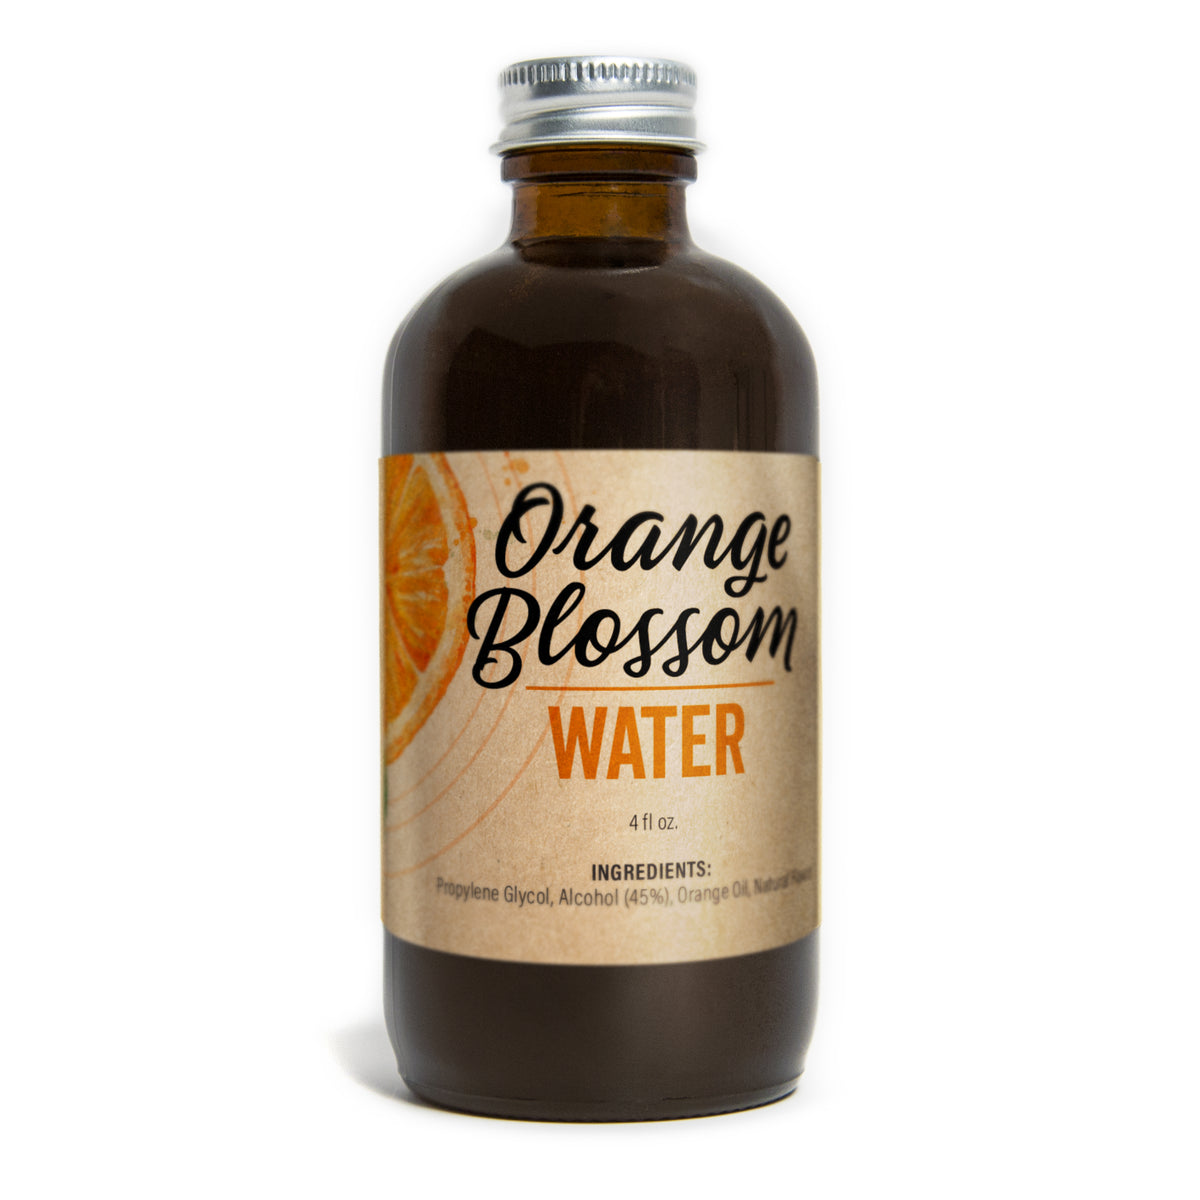 Orange Blossom Water